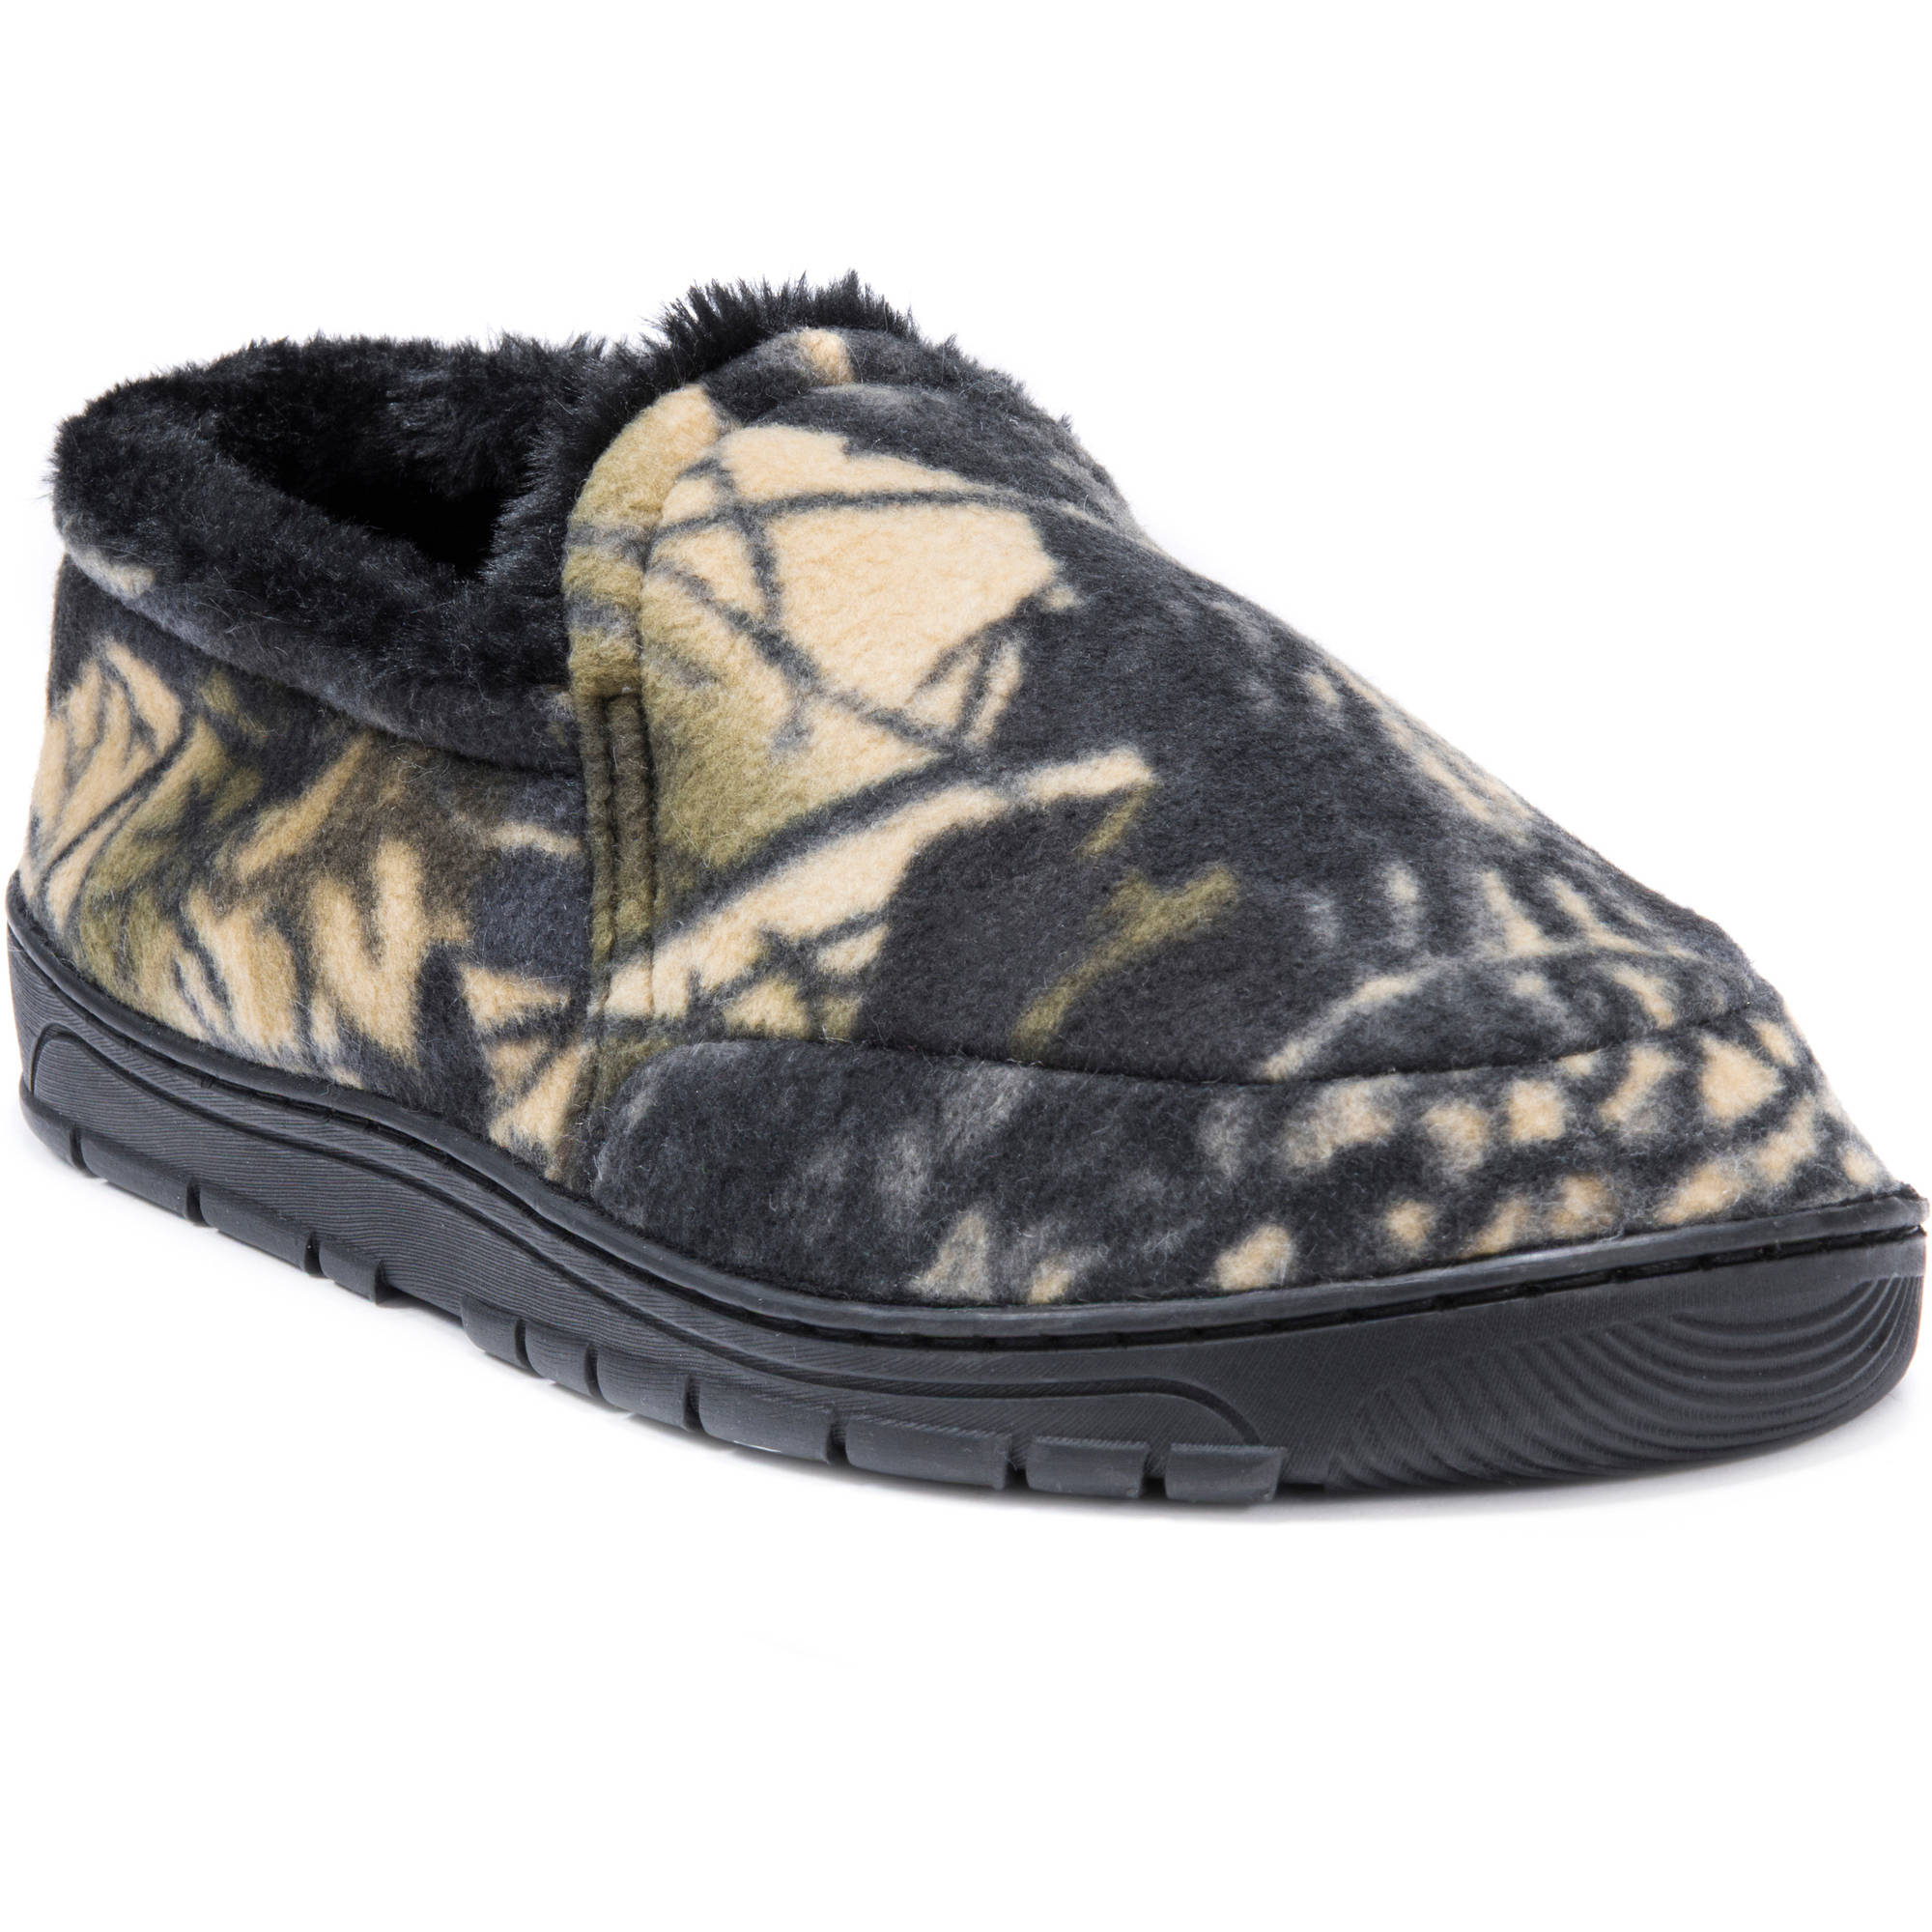 Men's Camouflage Espadrille Slipper